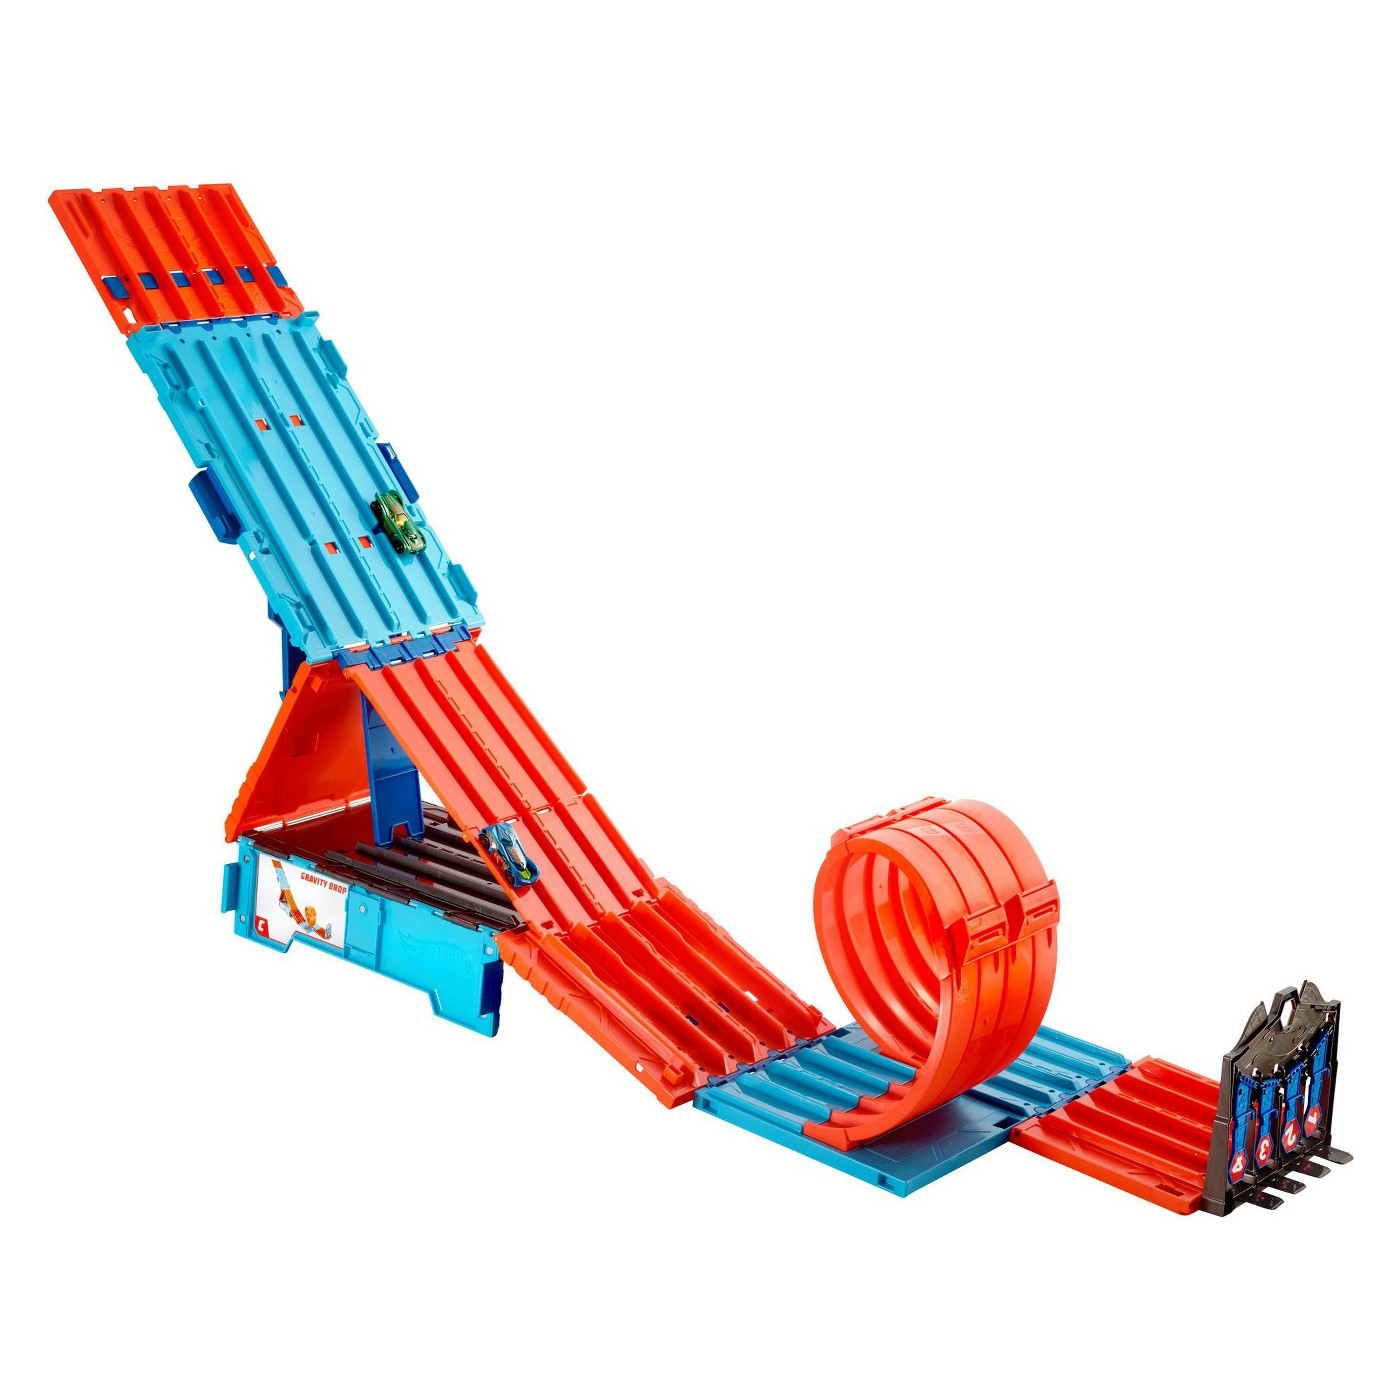 Hot Wheels Track Builder System Race Crate - image 1 of 8